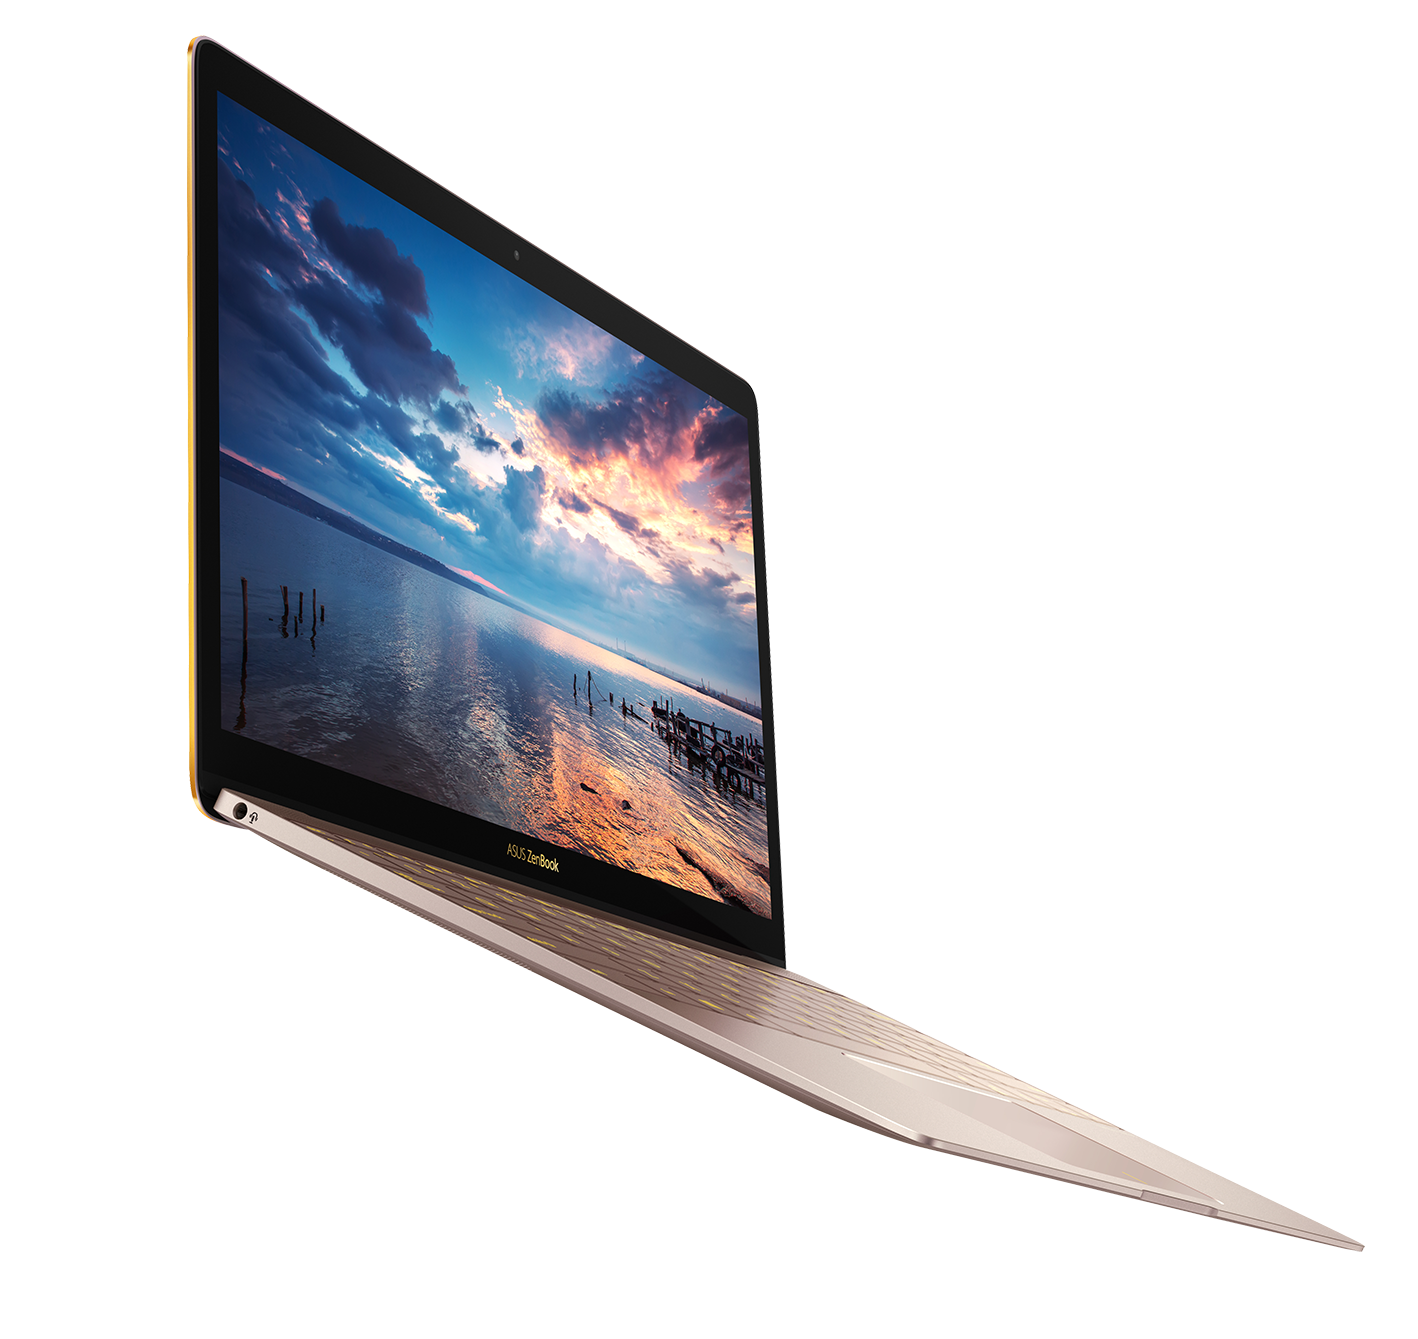 ASUS ZenBook 3_UX390_slim bezel display with wide viewing angle